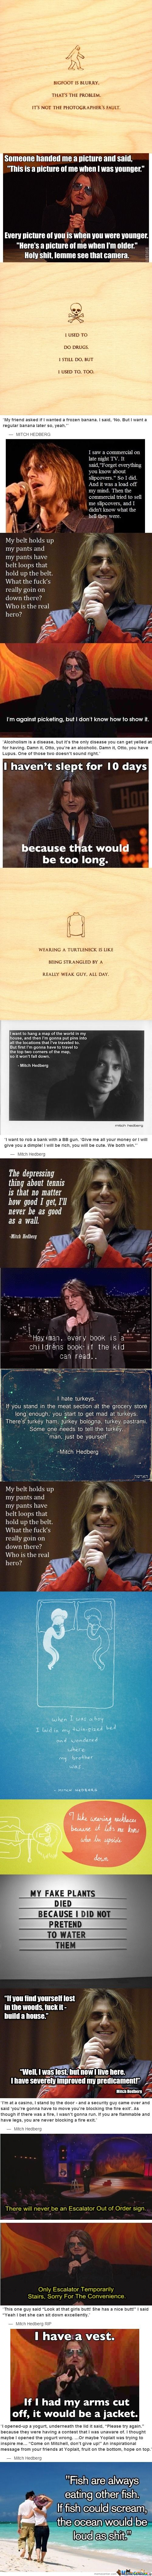 Mitch Hedberg Comp